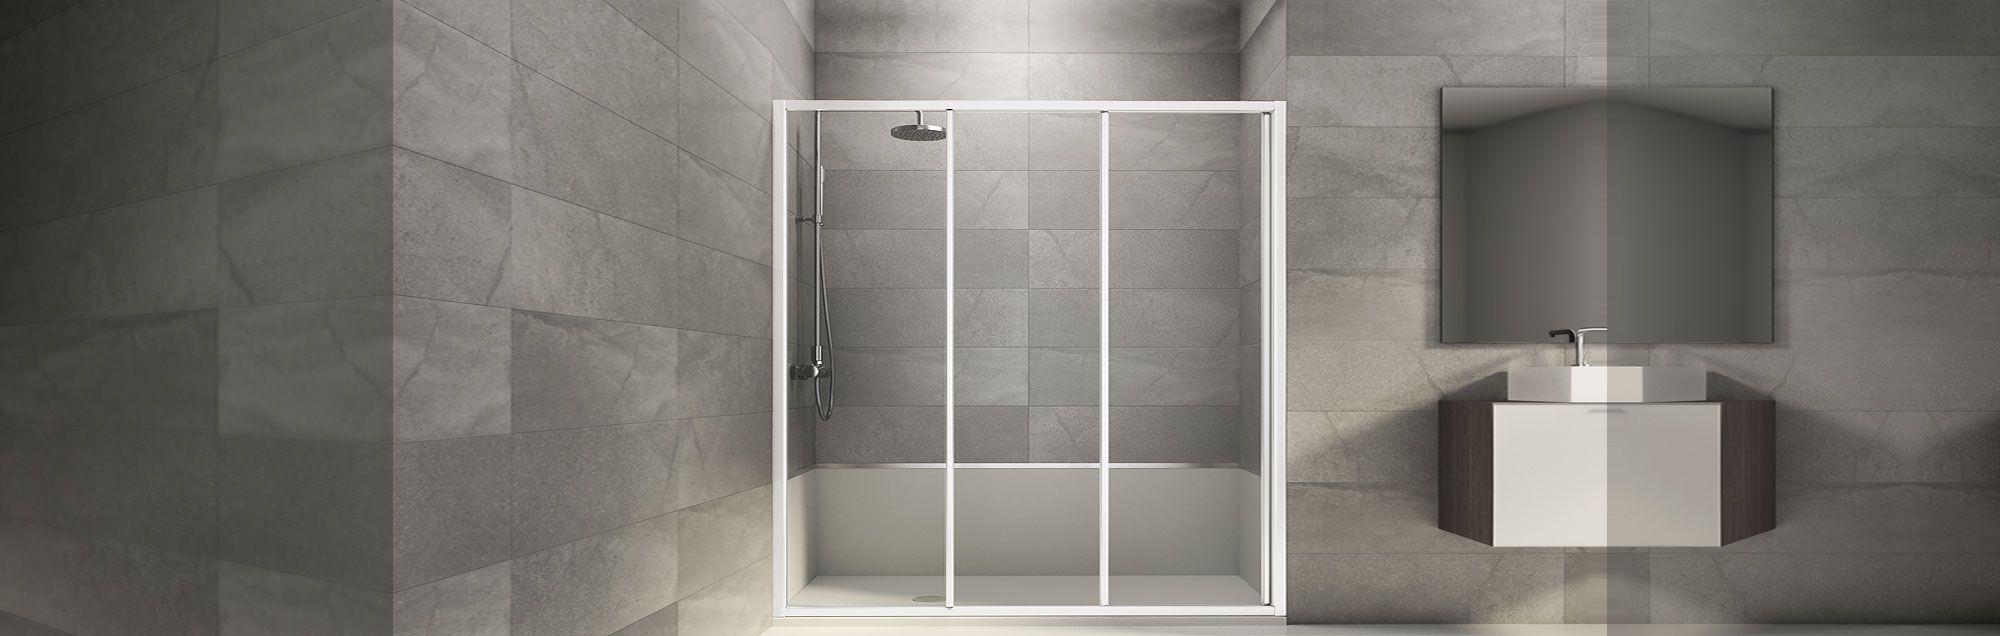 PROFILTEK Standard Collection made to measure bathroom enclosures